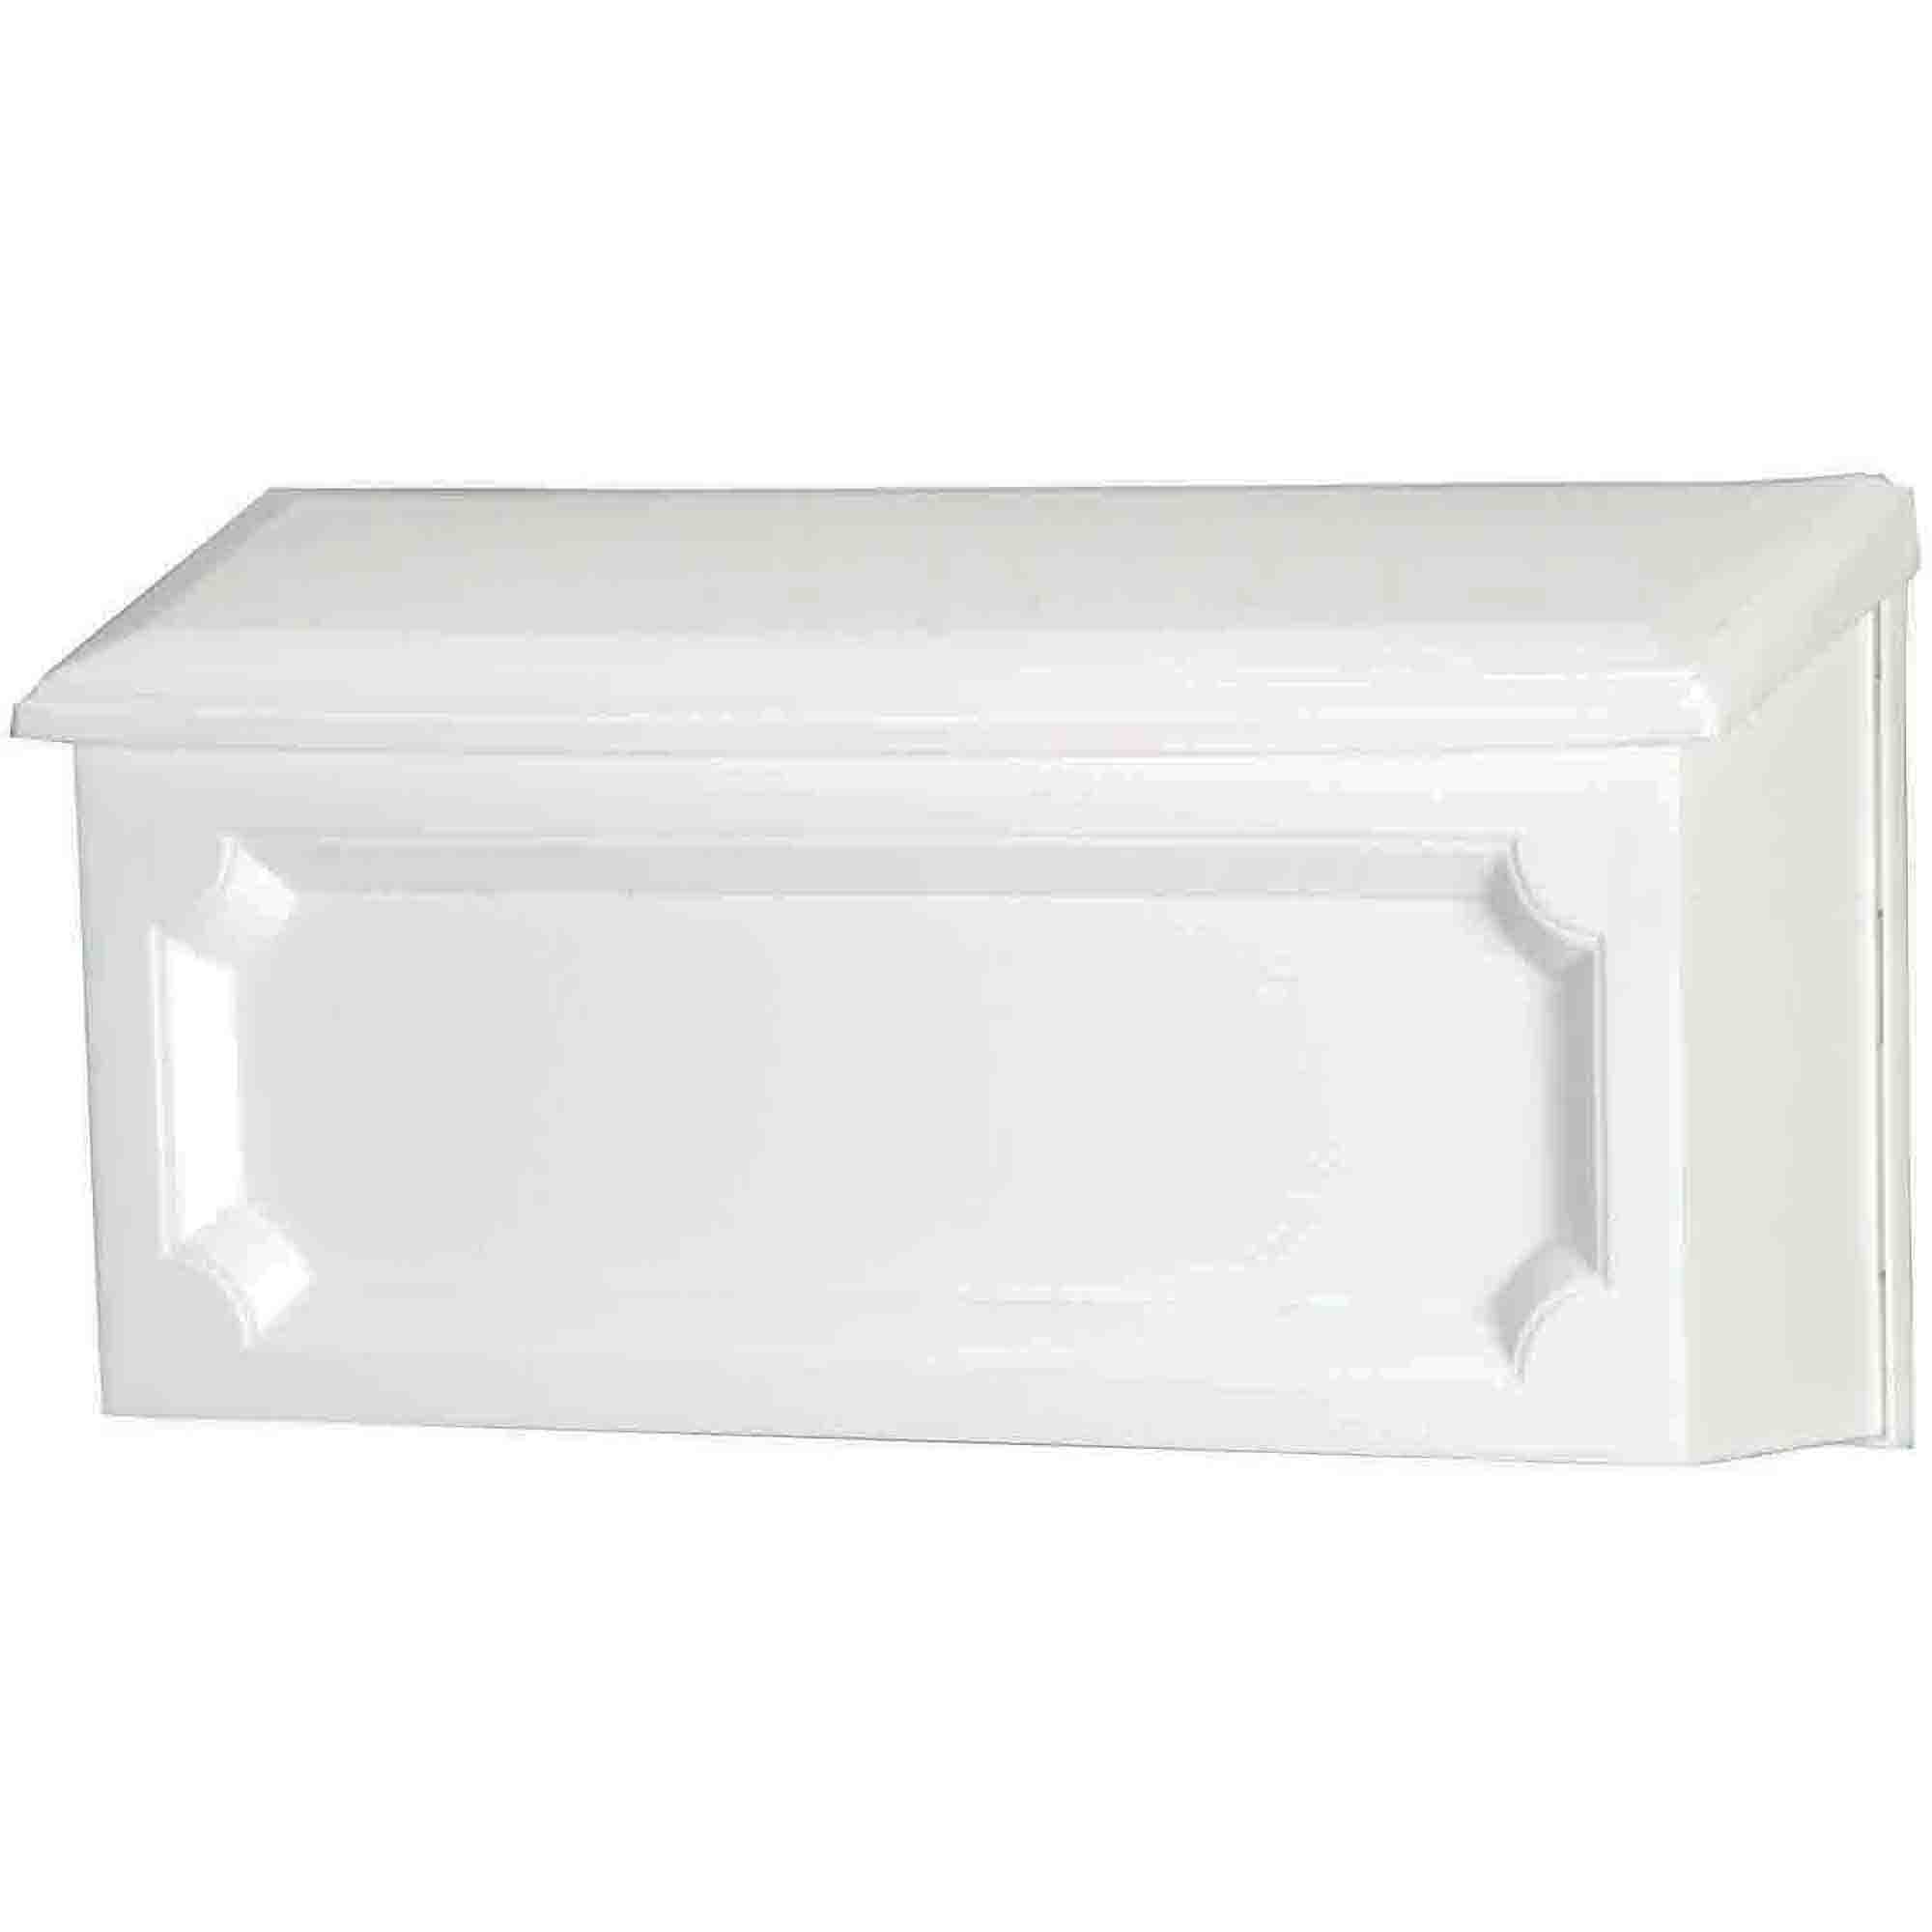 Gibraltar Waverly Standard-size Horizontal Plastic Wall-mount Mailbox, White by